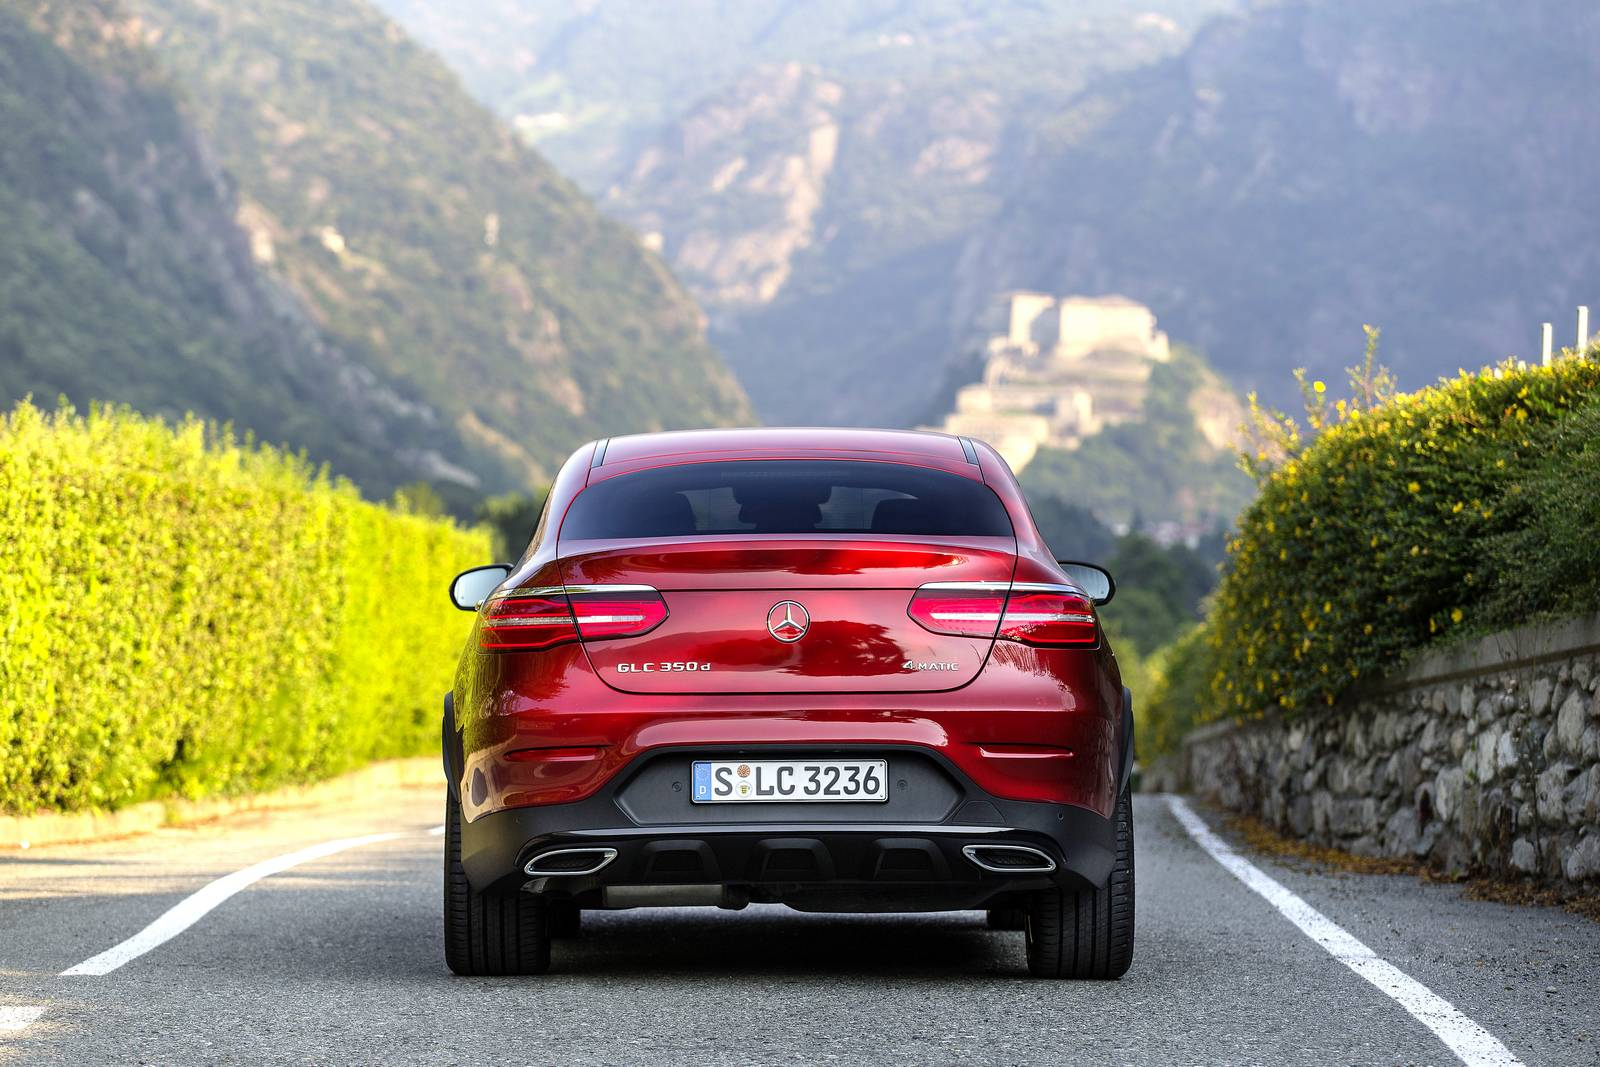 Mercedes benz glc 350 d coupe amg line 2016 wallpapers and hd images - Hyacinth Red Mercedes Benz Glc 350d Coupe 1 Of 12 Conclusion